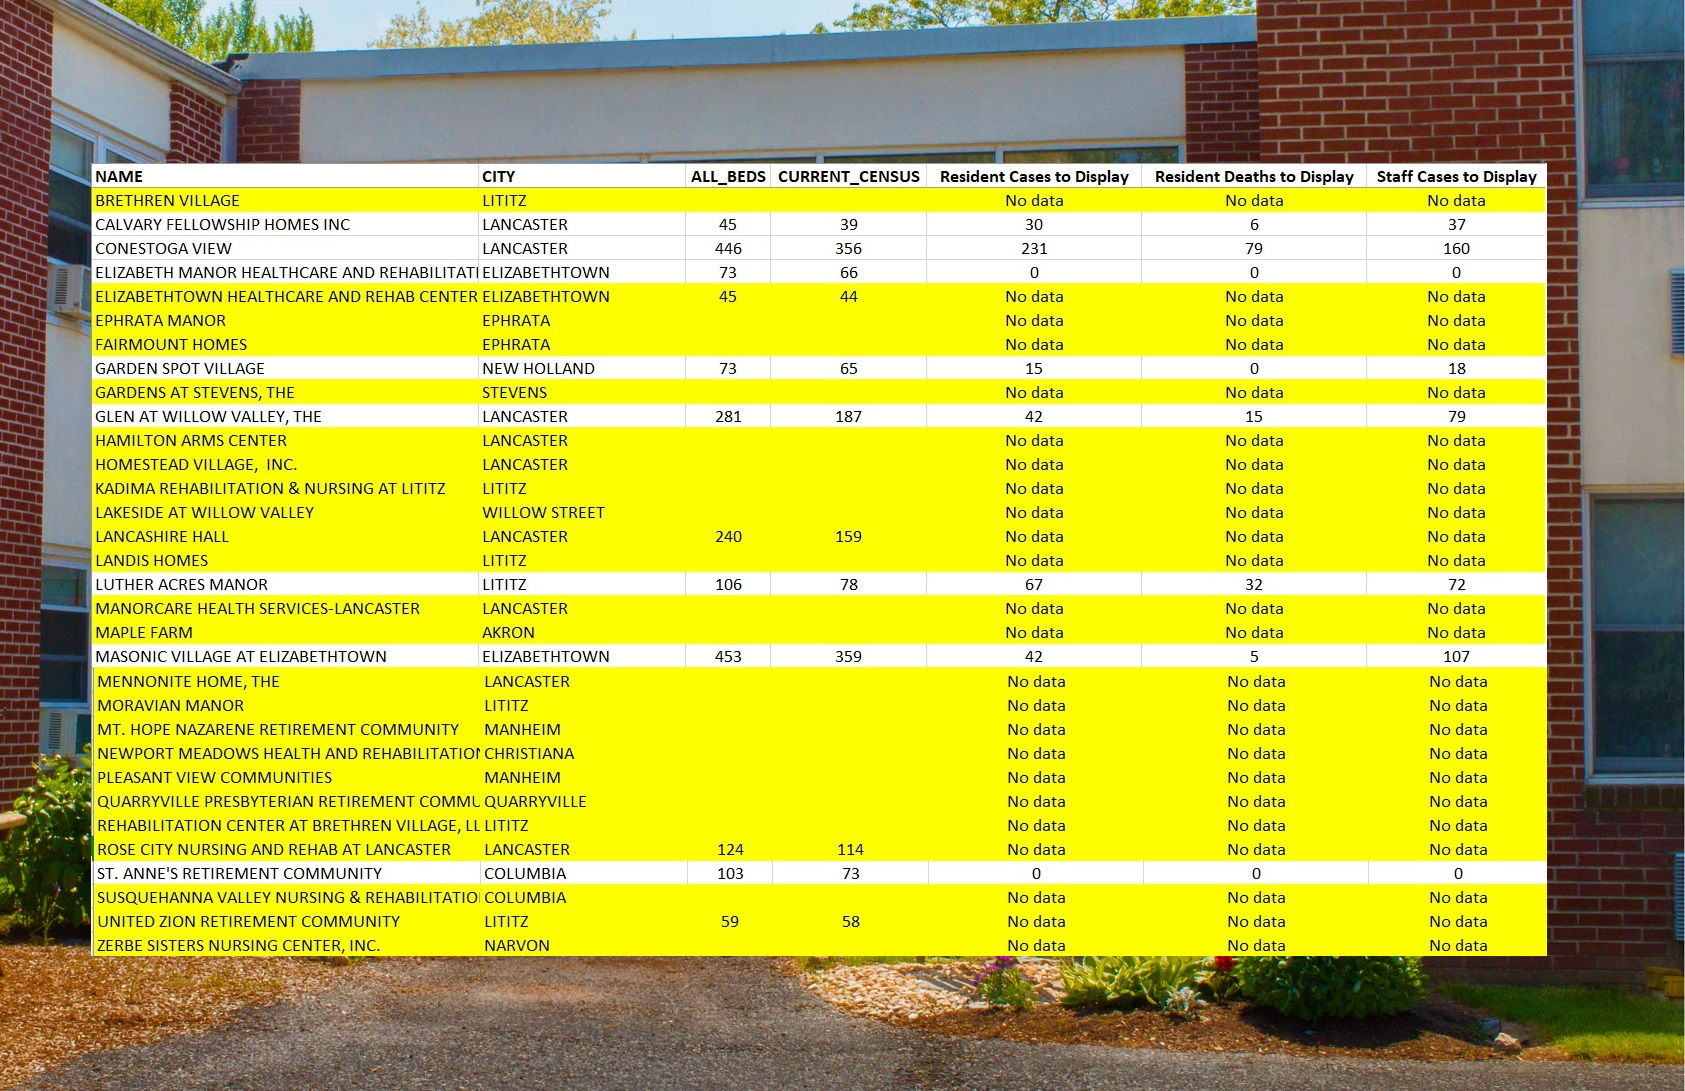 """The inset table shows the Pa. Department of Health's Long Term Care Facility report for Lancaster County institutions as of Jan. 21, 2021. (Source: Health.pa.gov) The underlying photo is of The Gardens at Stevens, one of the sites showing """"no data."""""""